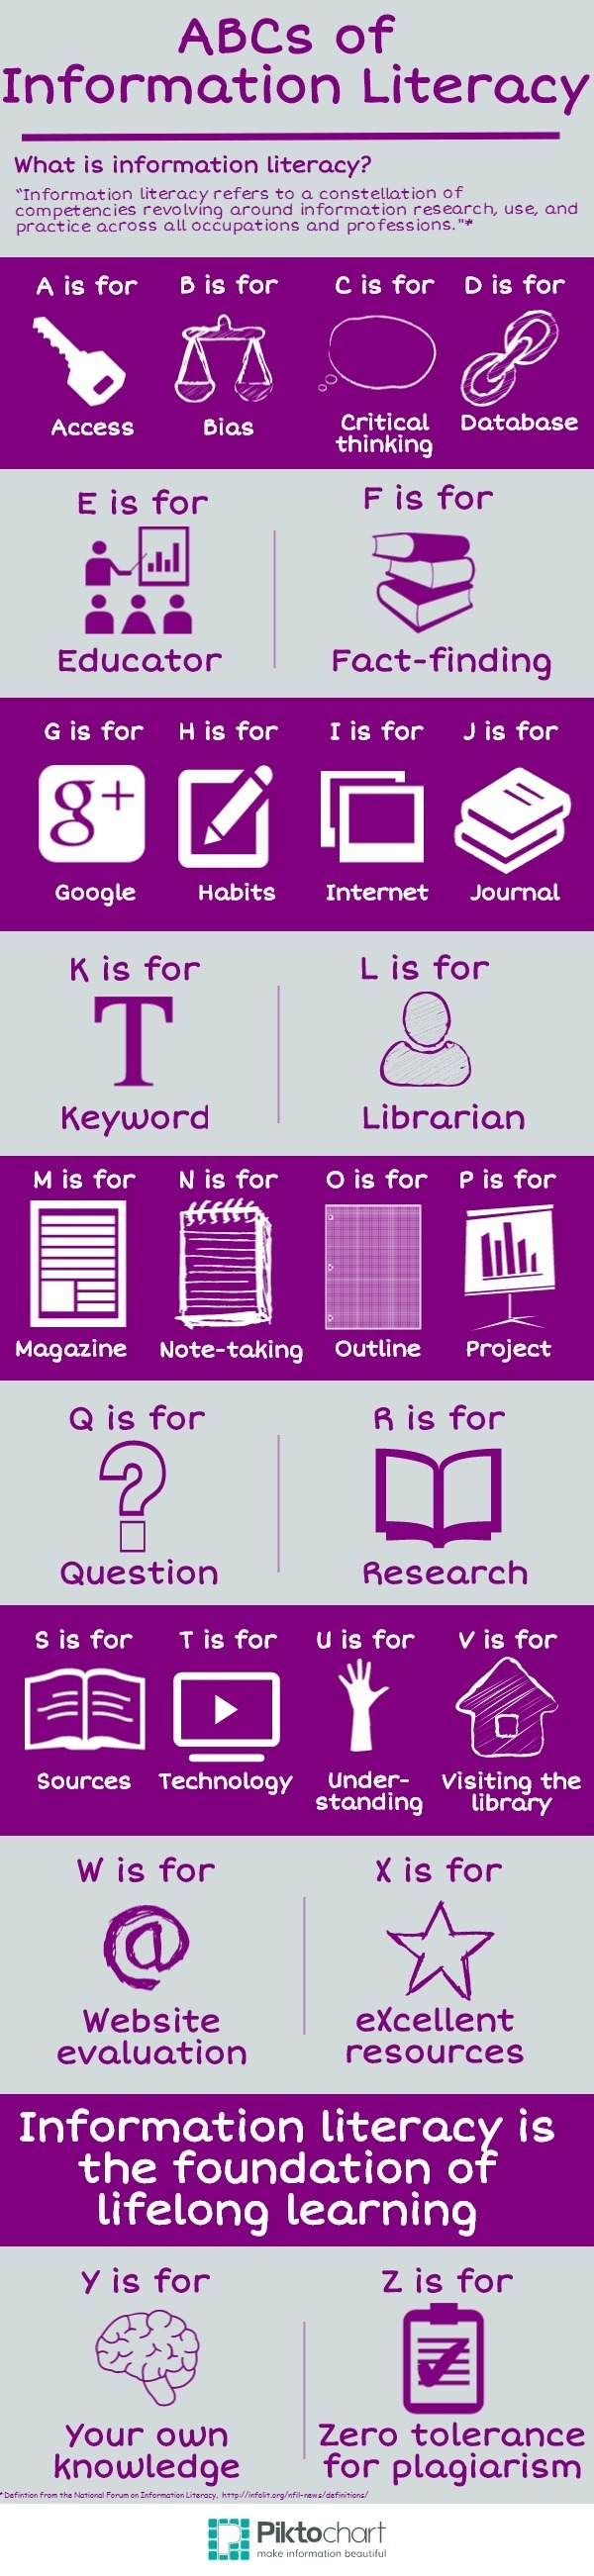 The ABCs of Information Literacy Infographic